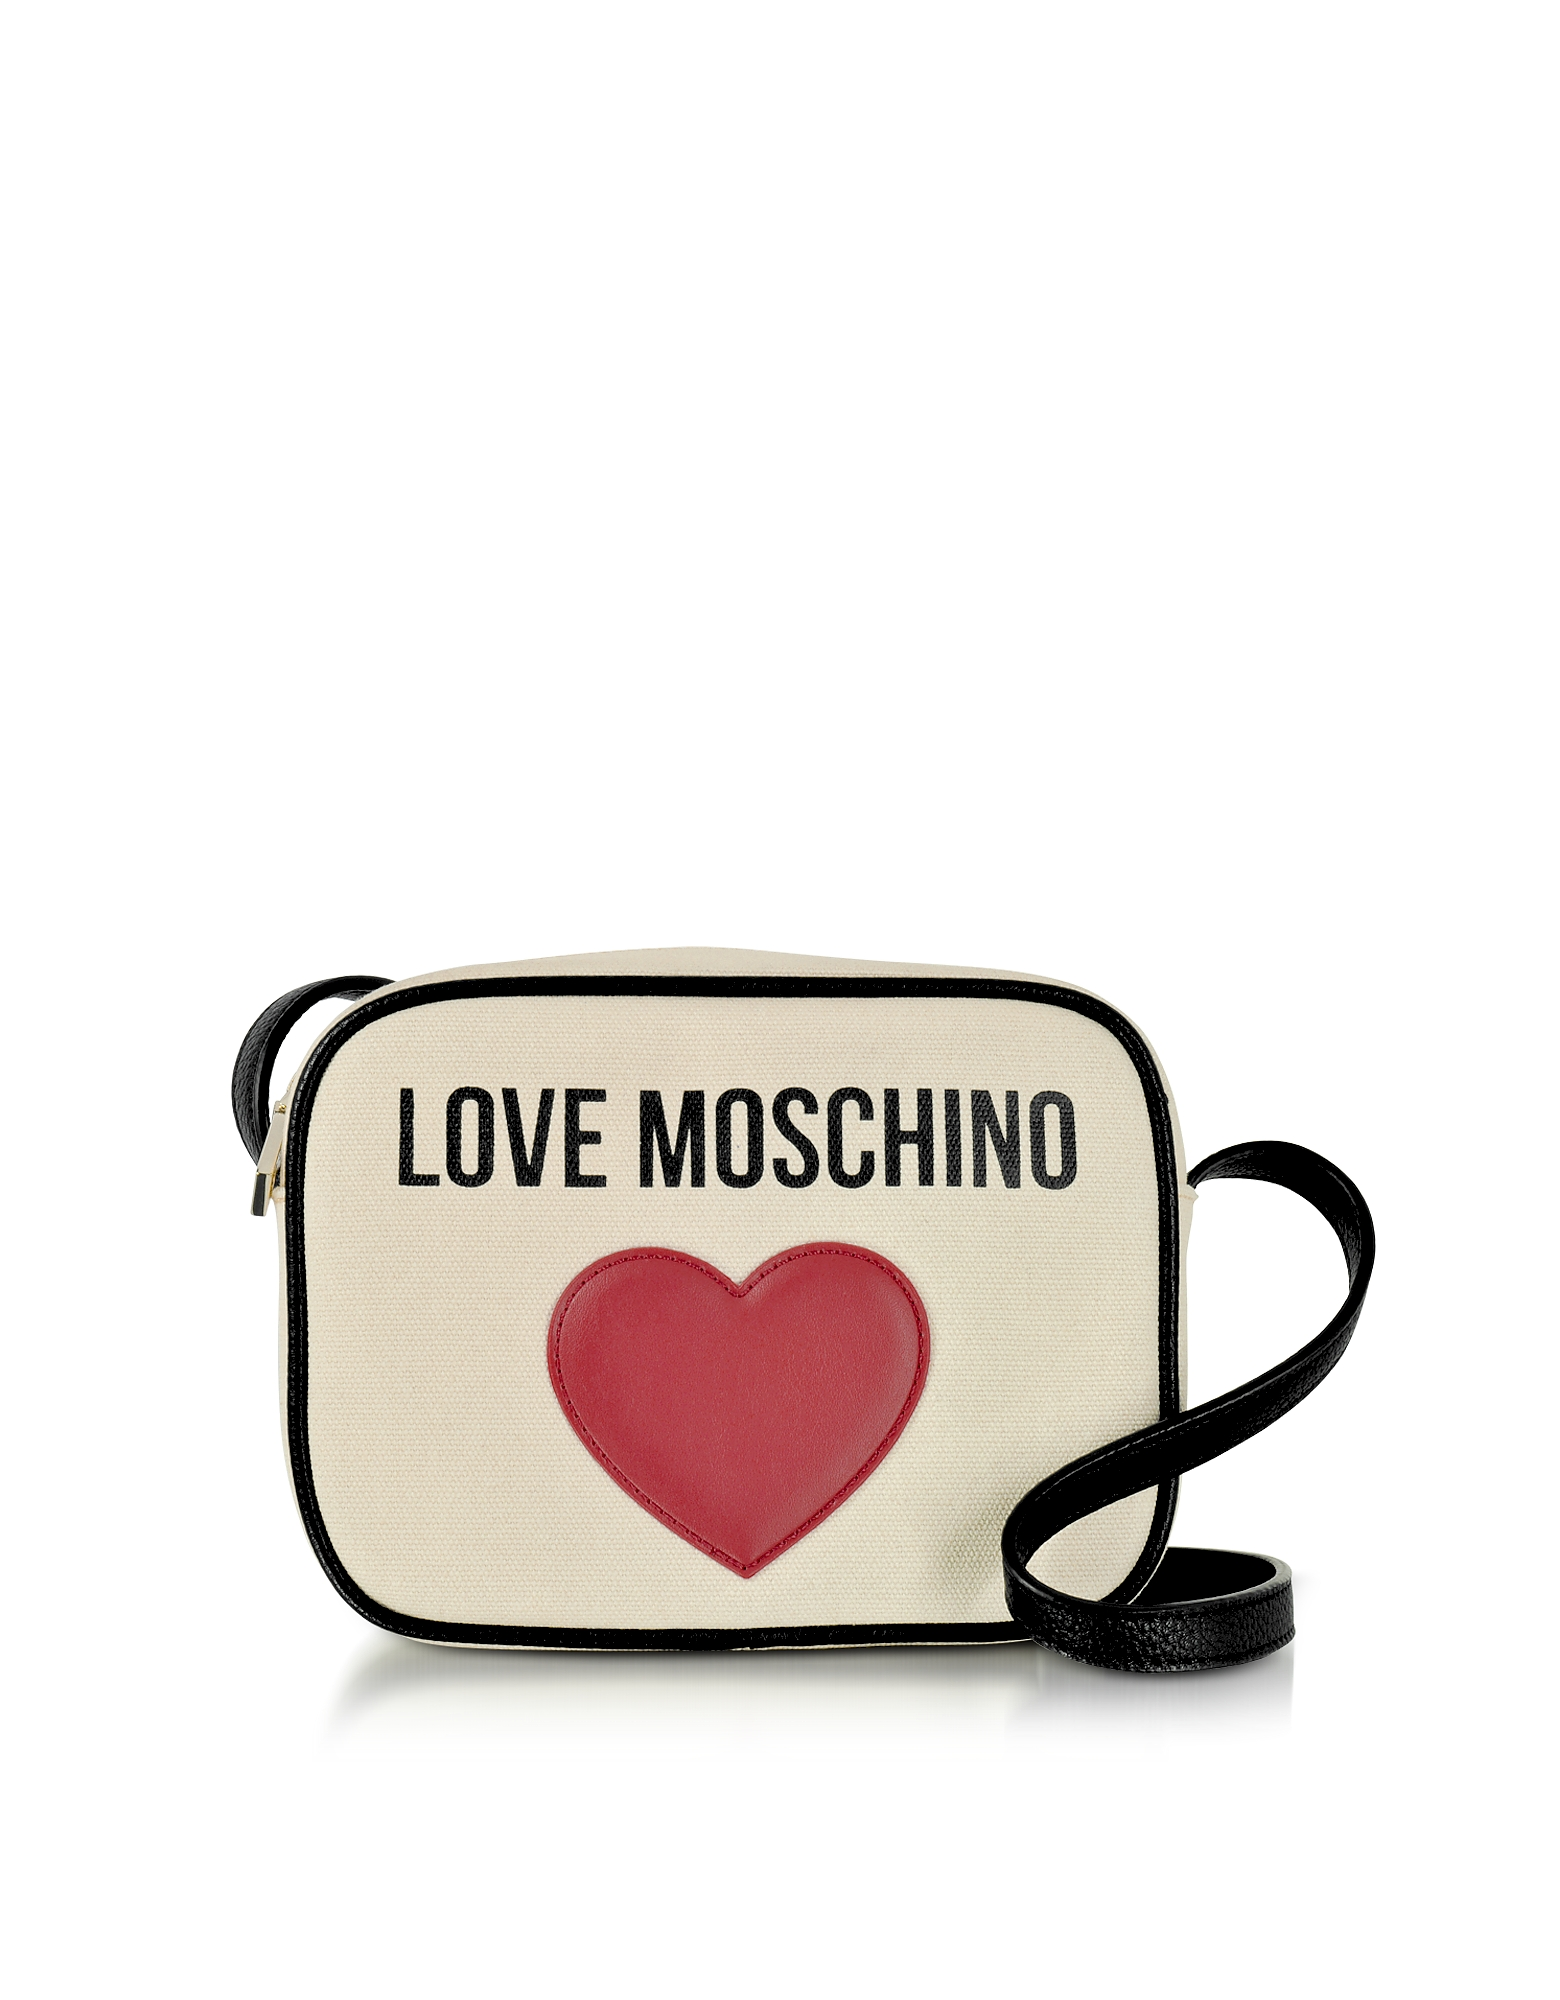 Love Moschino Handbags, Love Moschino & Heart Cotton Camera Bag